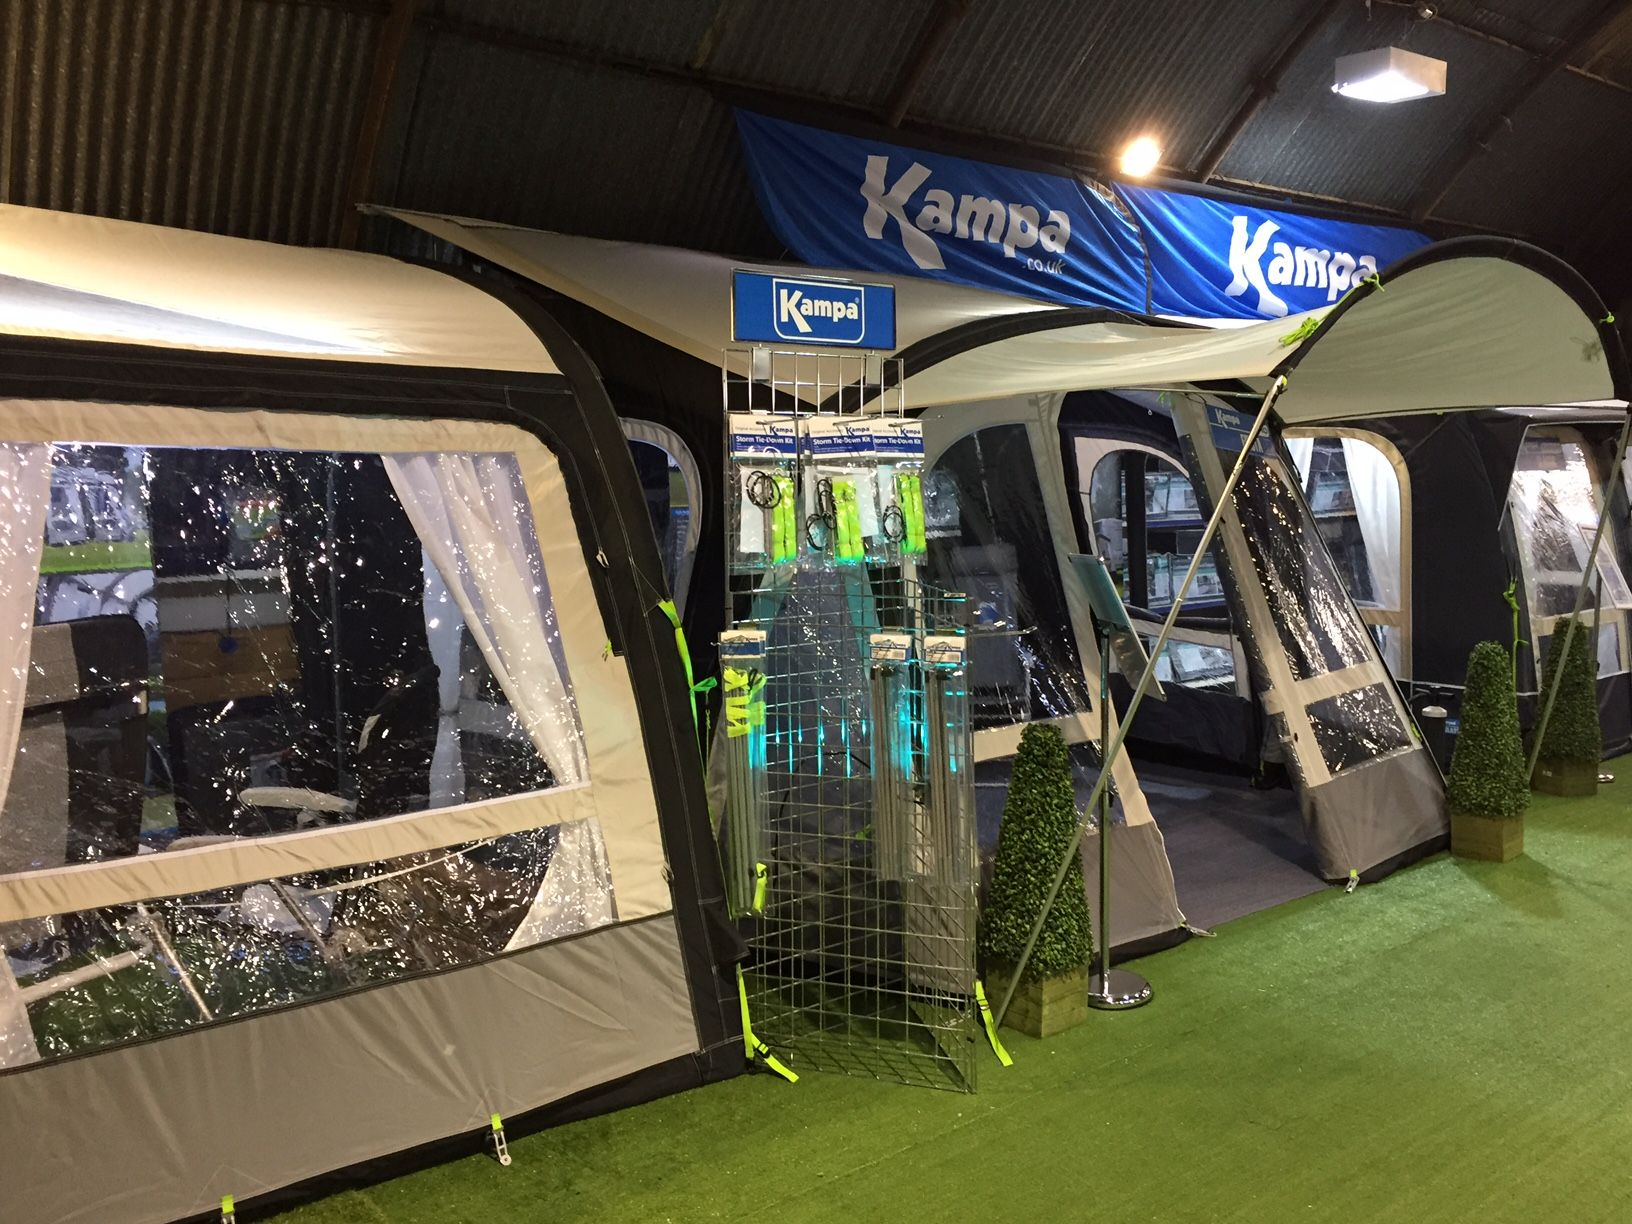 Superb Kampa Awnings In Our Tamworth Showroom Camping Shop Showroom Tent